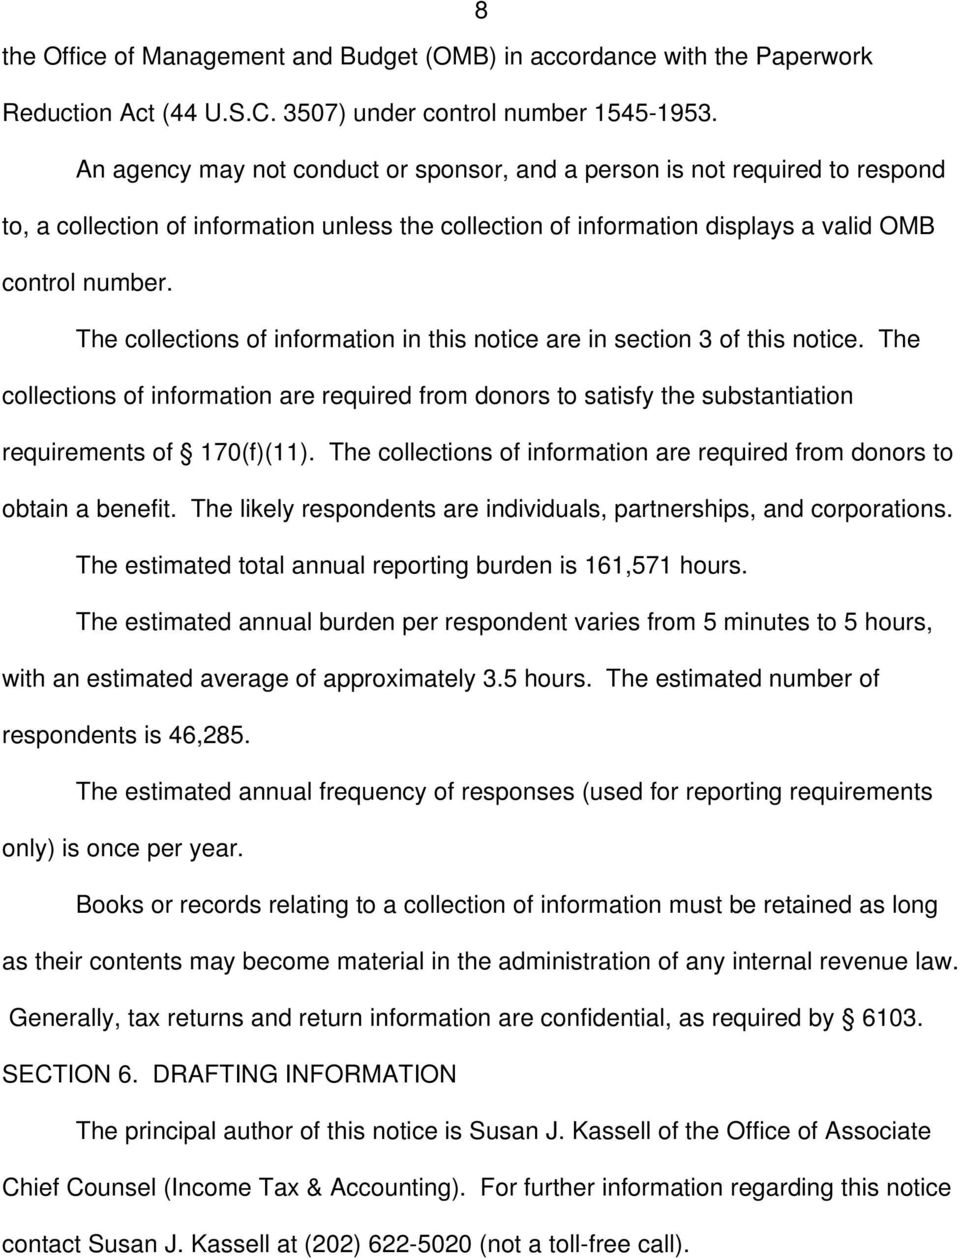 The collections of information in this notice are in section 3 of this notice. The collections of information are required from donors to satisfy the substantiation requirements of 170(f)(11).